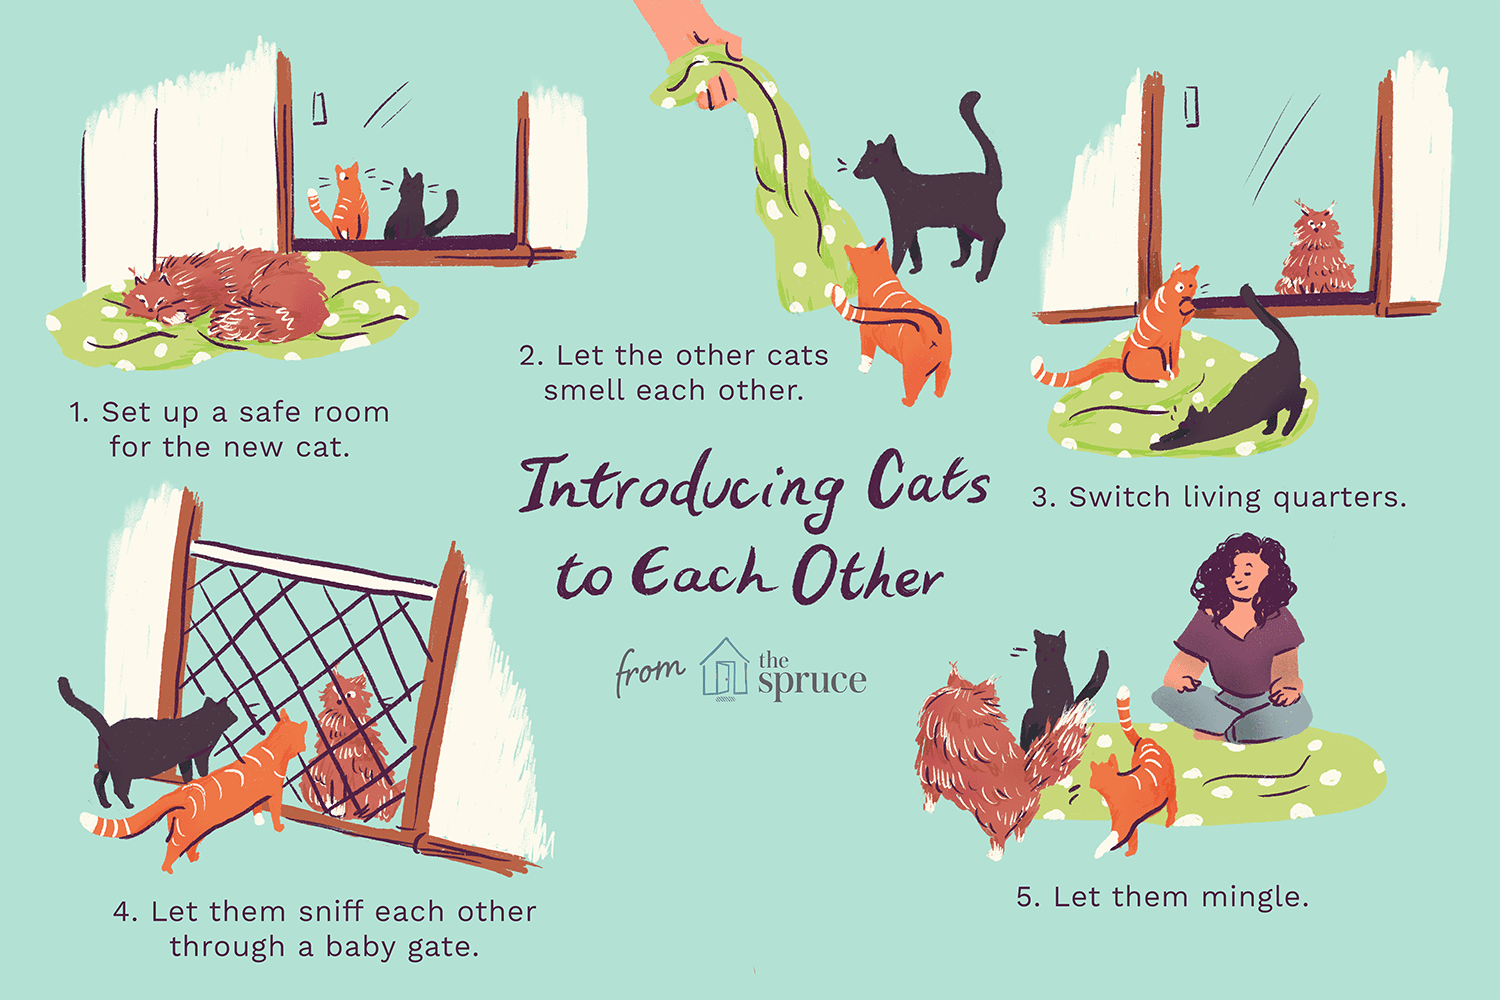 An illustration showing how to introduce cats to each other